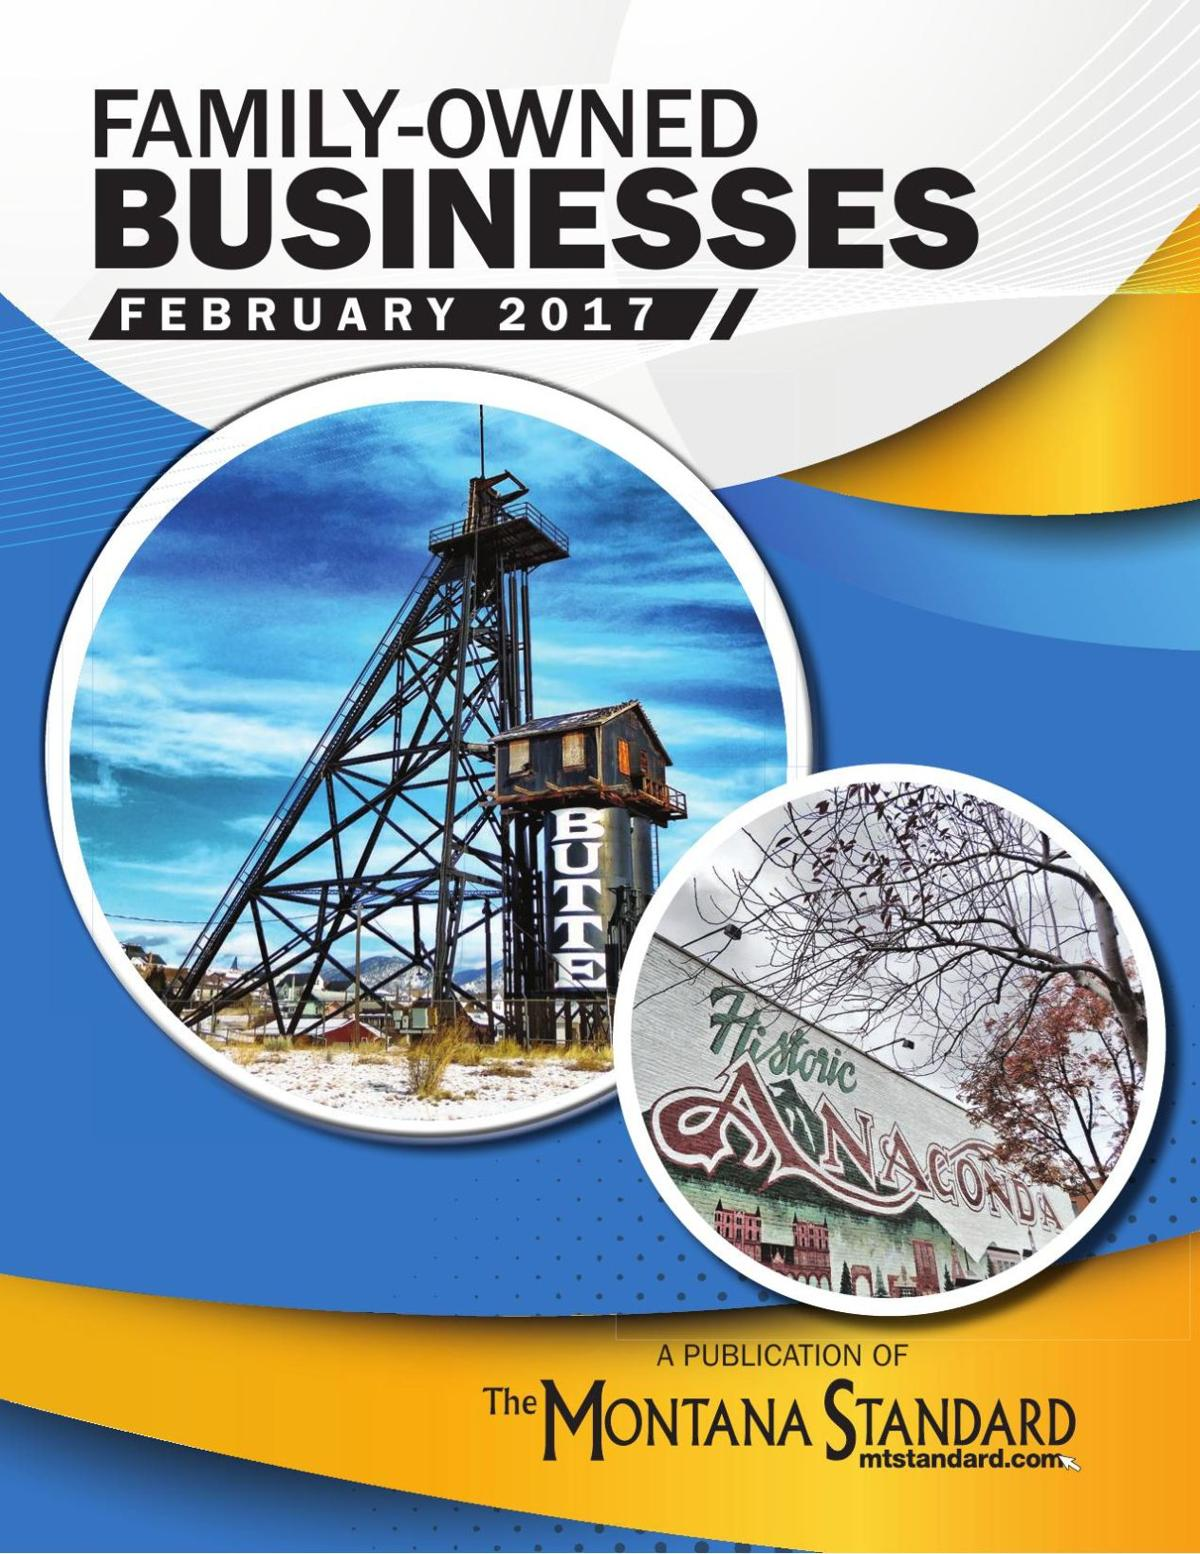 Family-owned Businesses